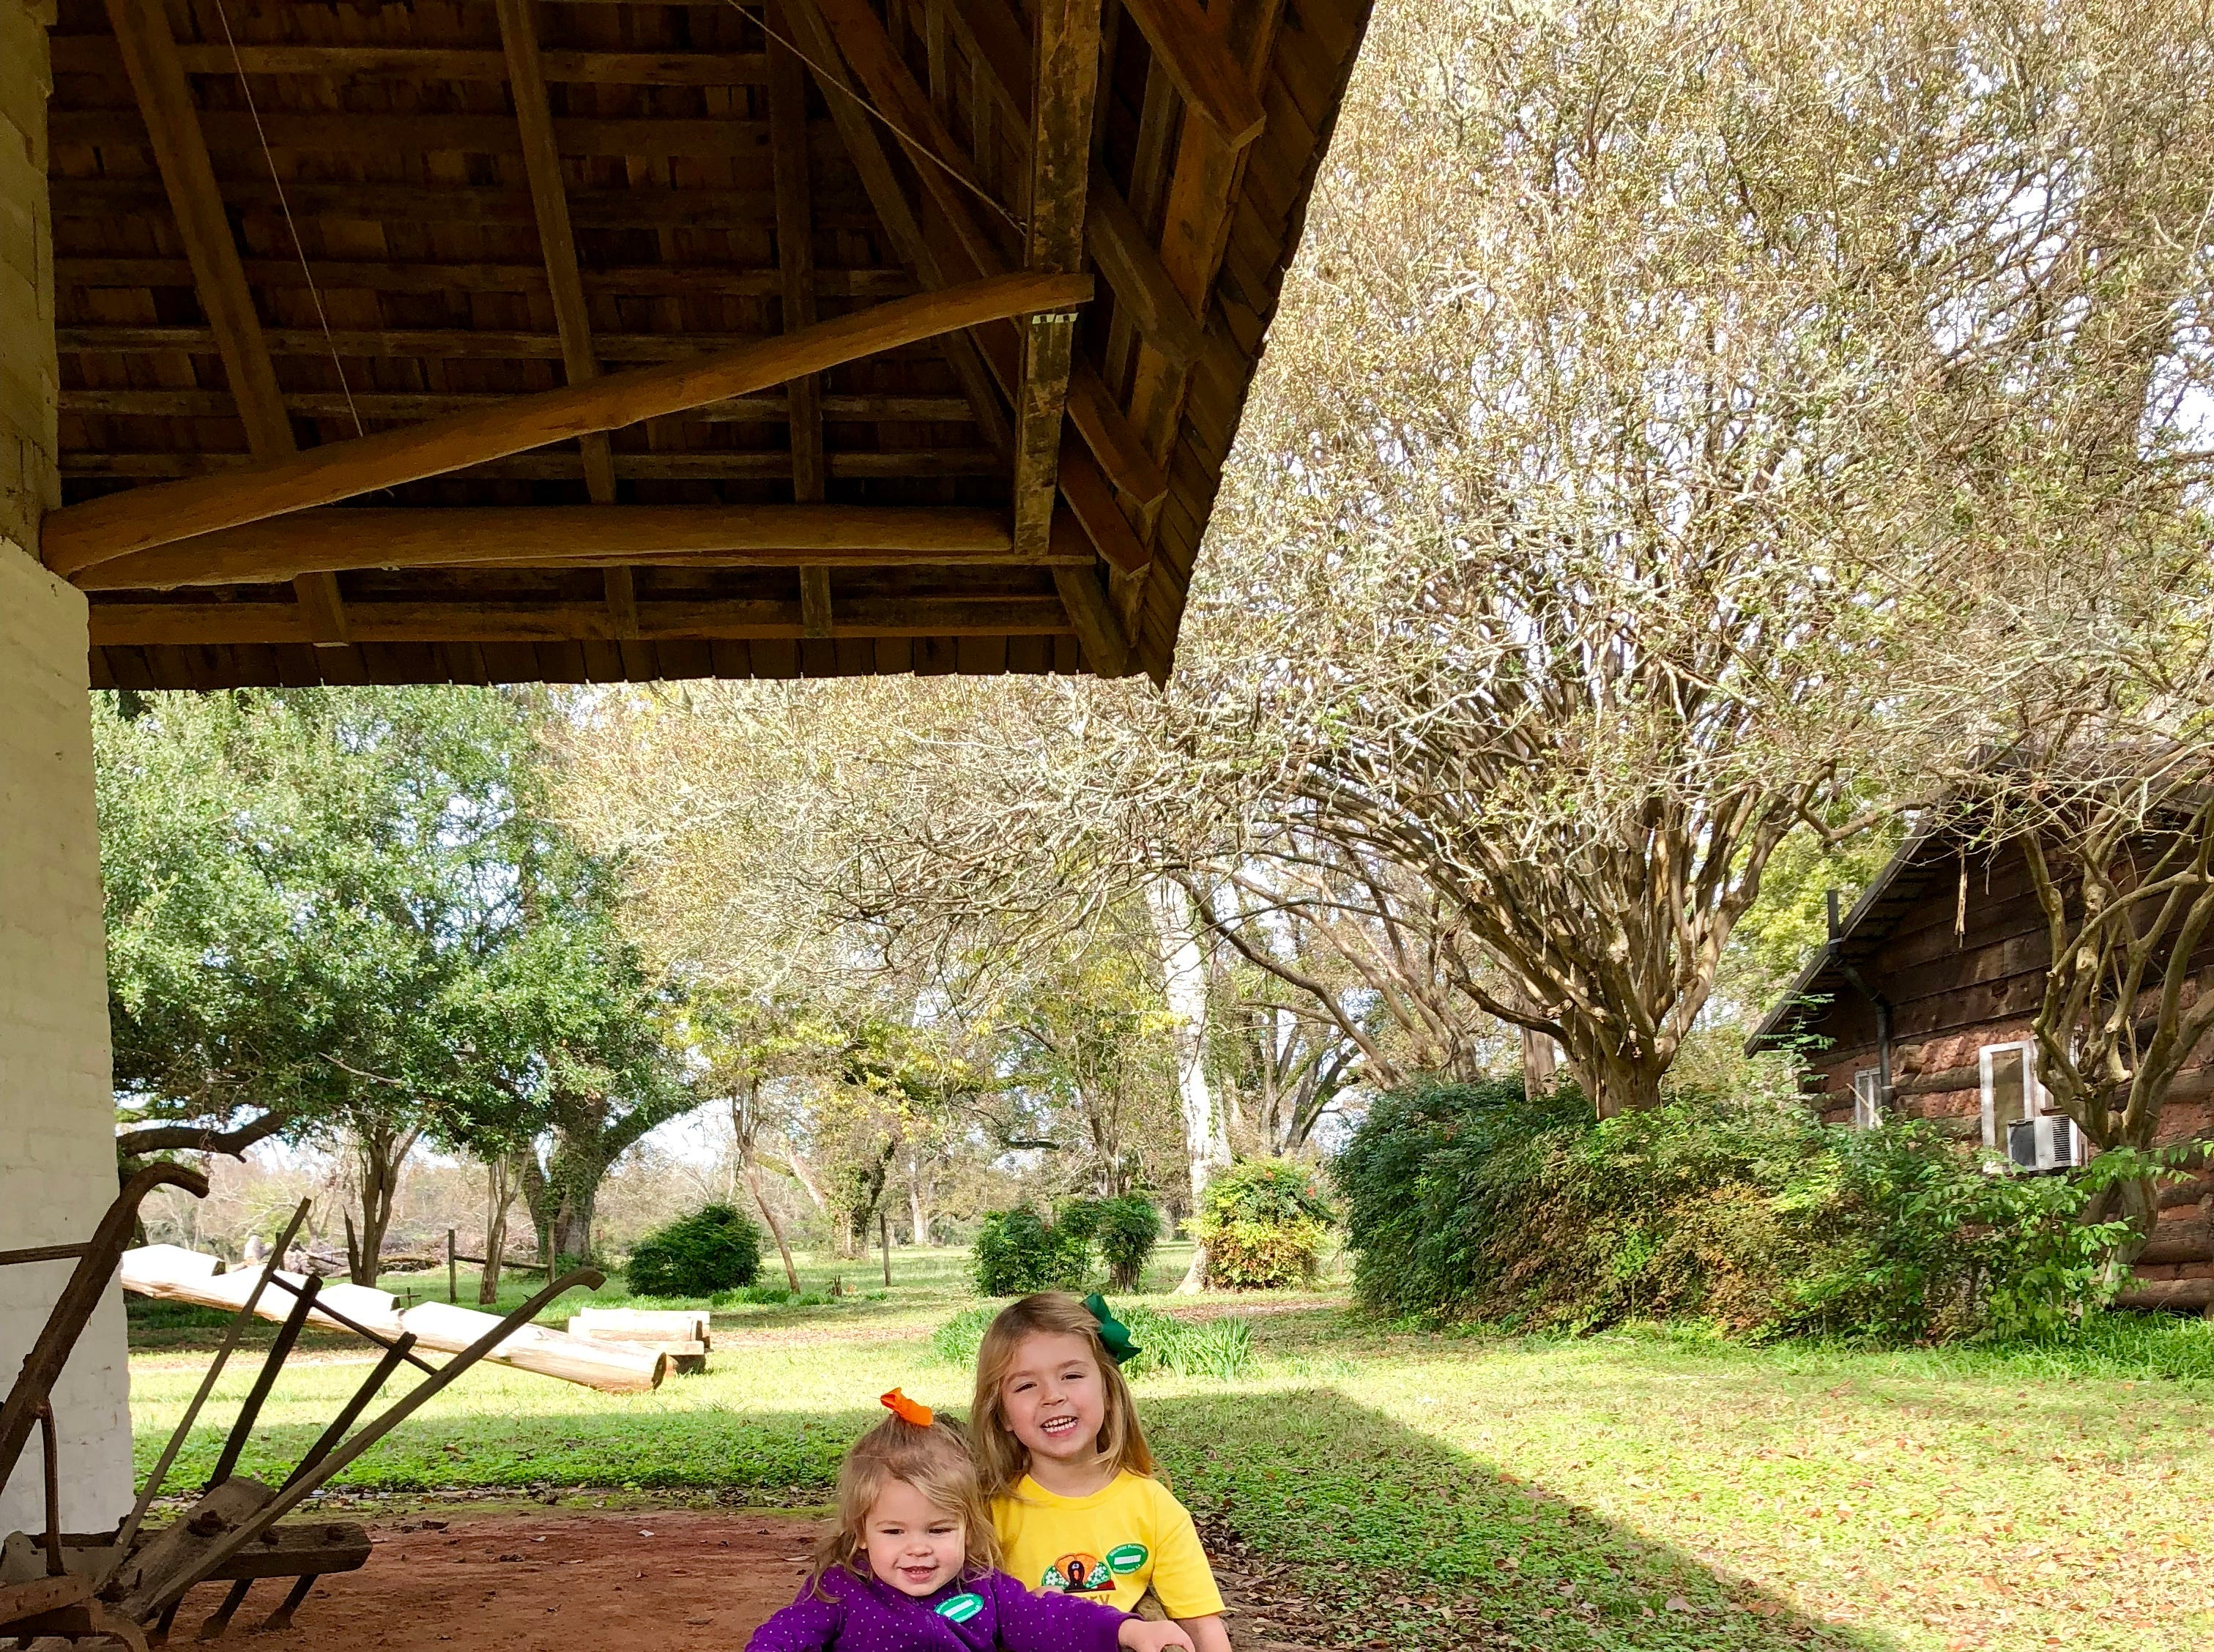 Avery and Marie Guidry discover an historic canoe made from a log on the grounds of Melrose Plantation in Cloutierville.